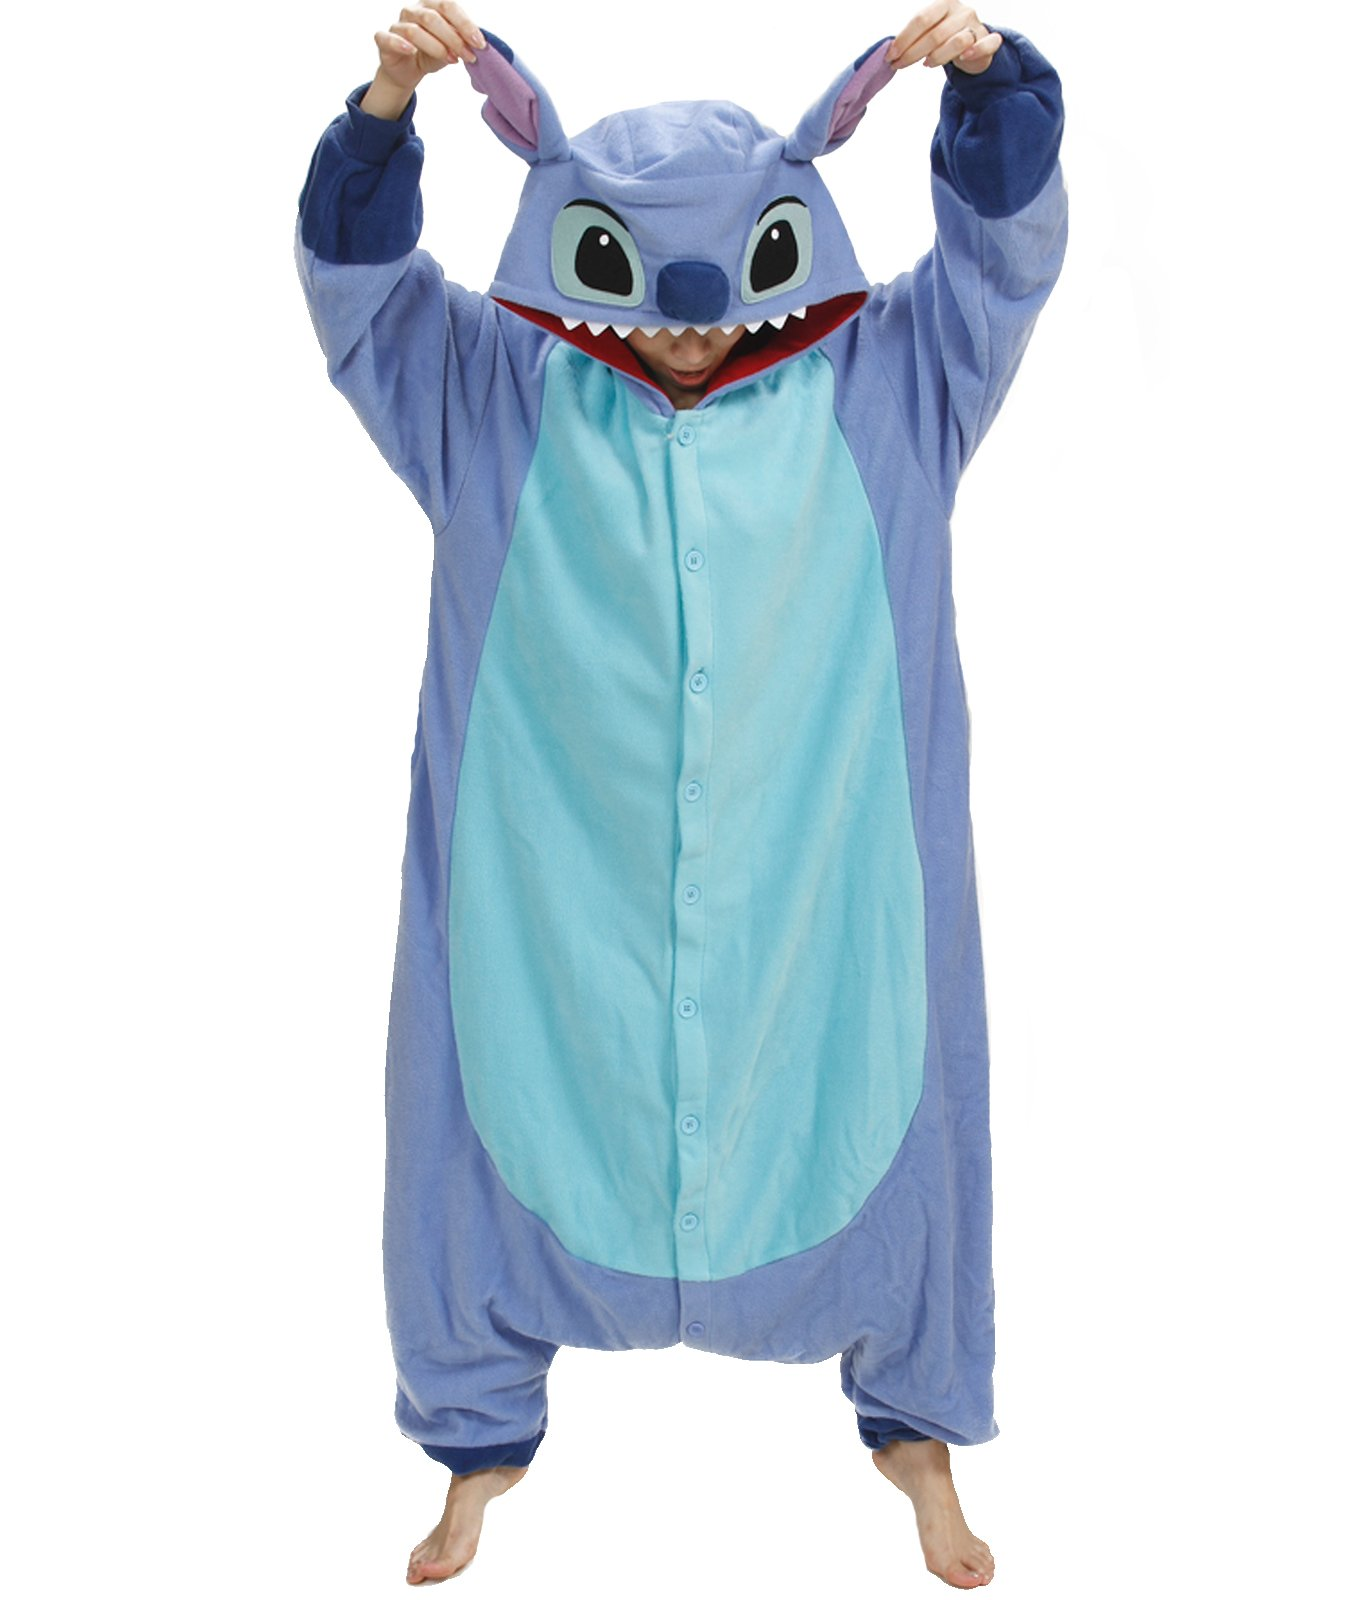 Disney Stitch Pajama Costume